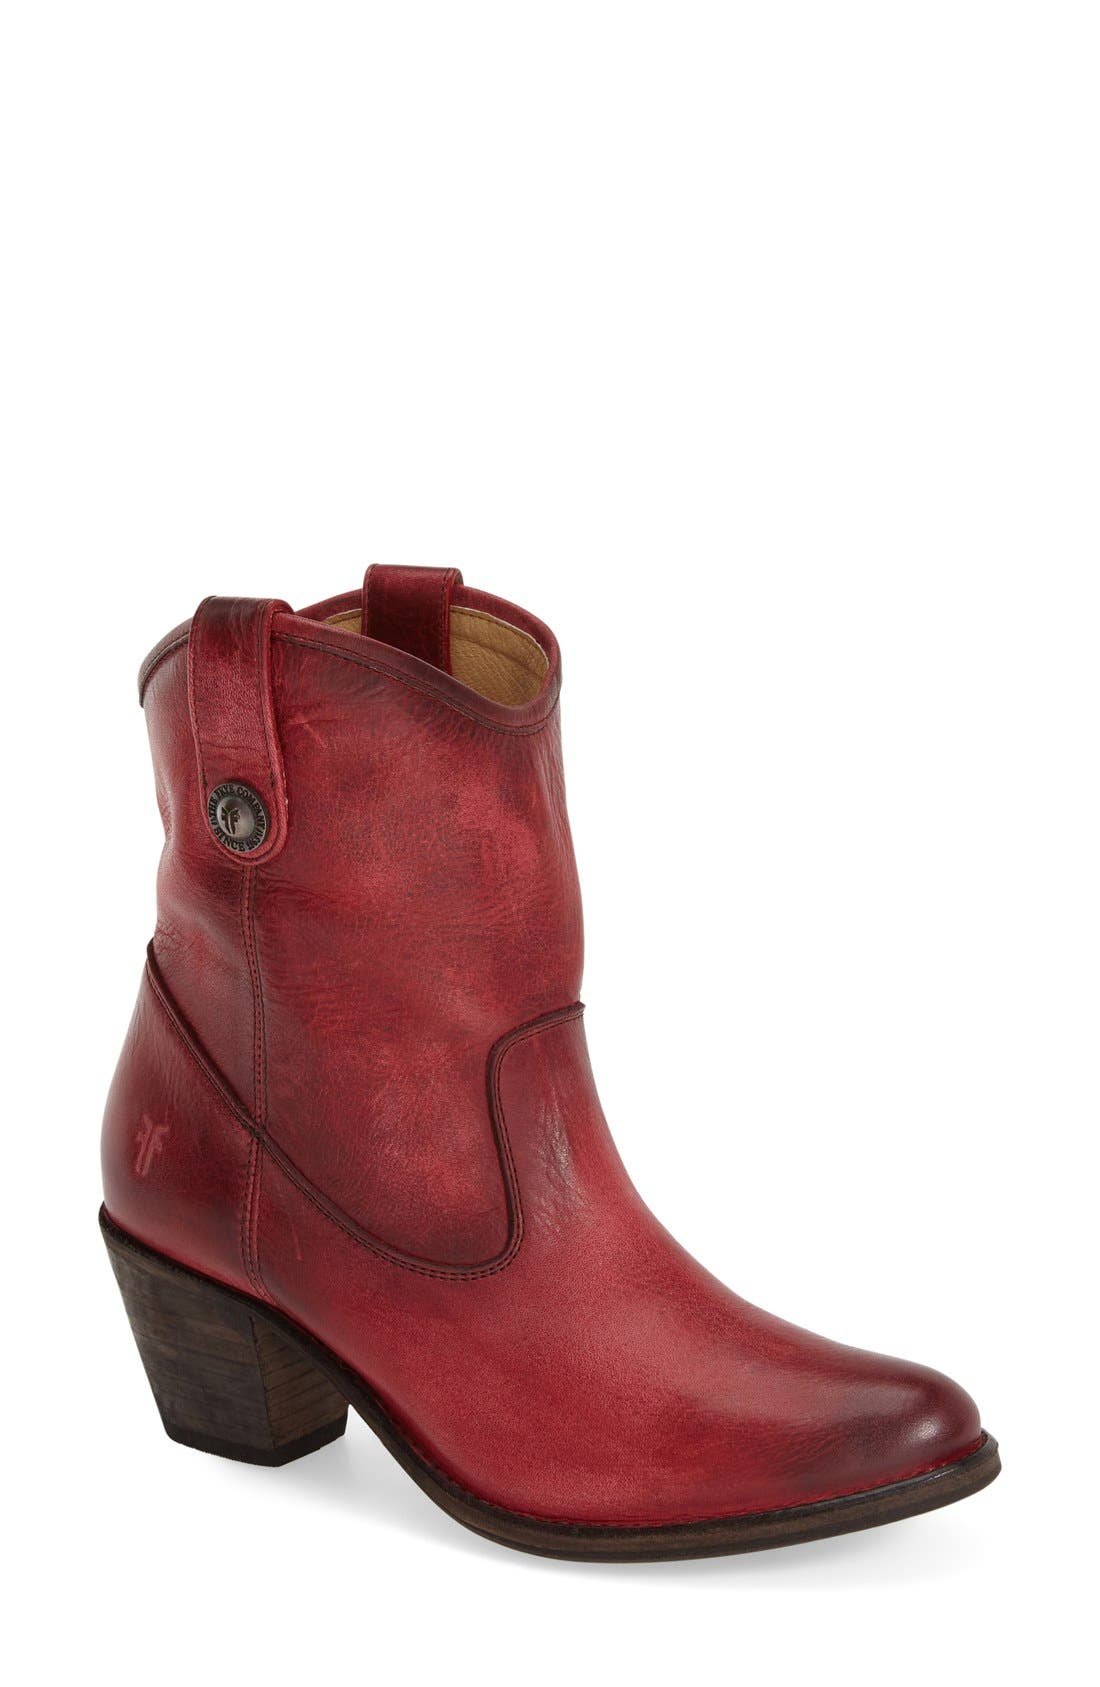 'Jackie Button' Short Bootie,                             Main thumbnail 1, color,                             930